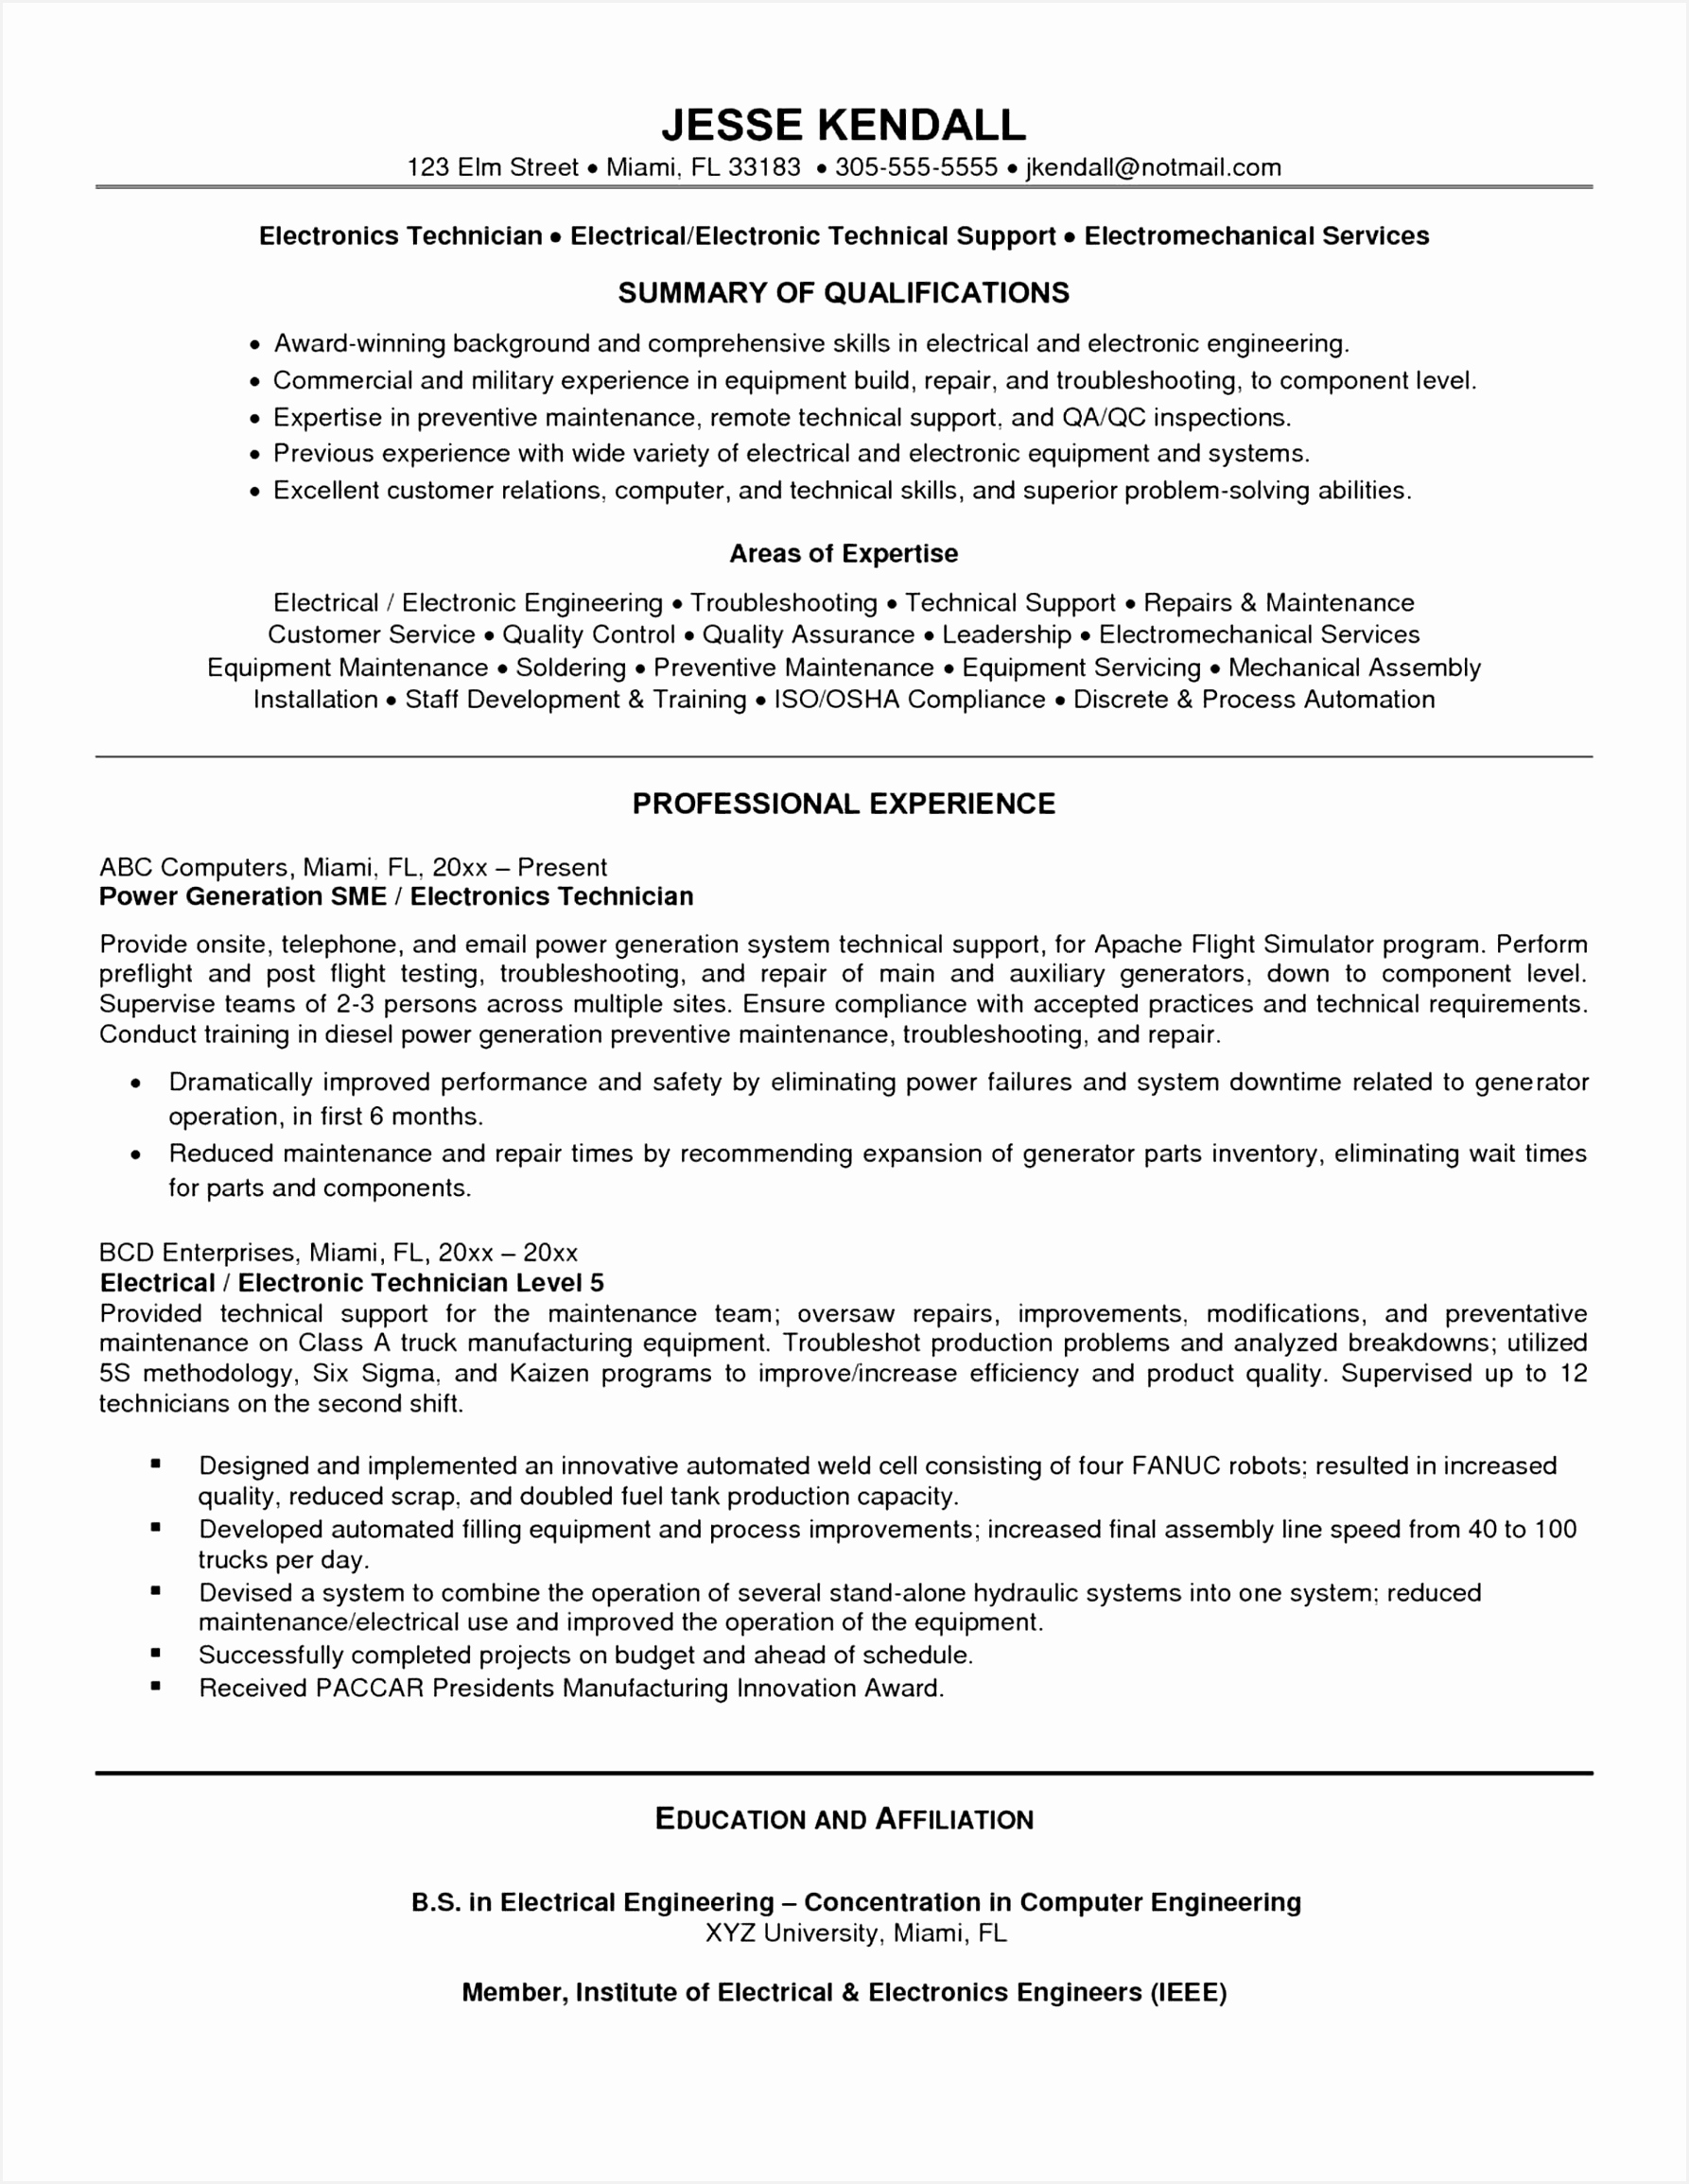 Electrical Engineering Resume Template Dgfaw Elegant 30 New Electronic Engineering Resume Sample Picture Of Electrical Engineering Resume Template Xvhgb Beautiful Resume Template for software Engineer Unique software Engineer